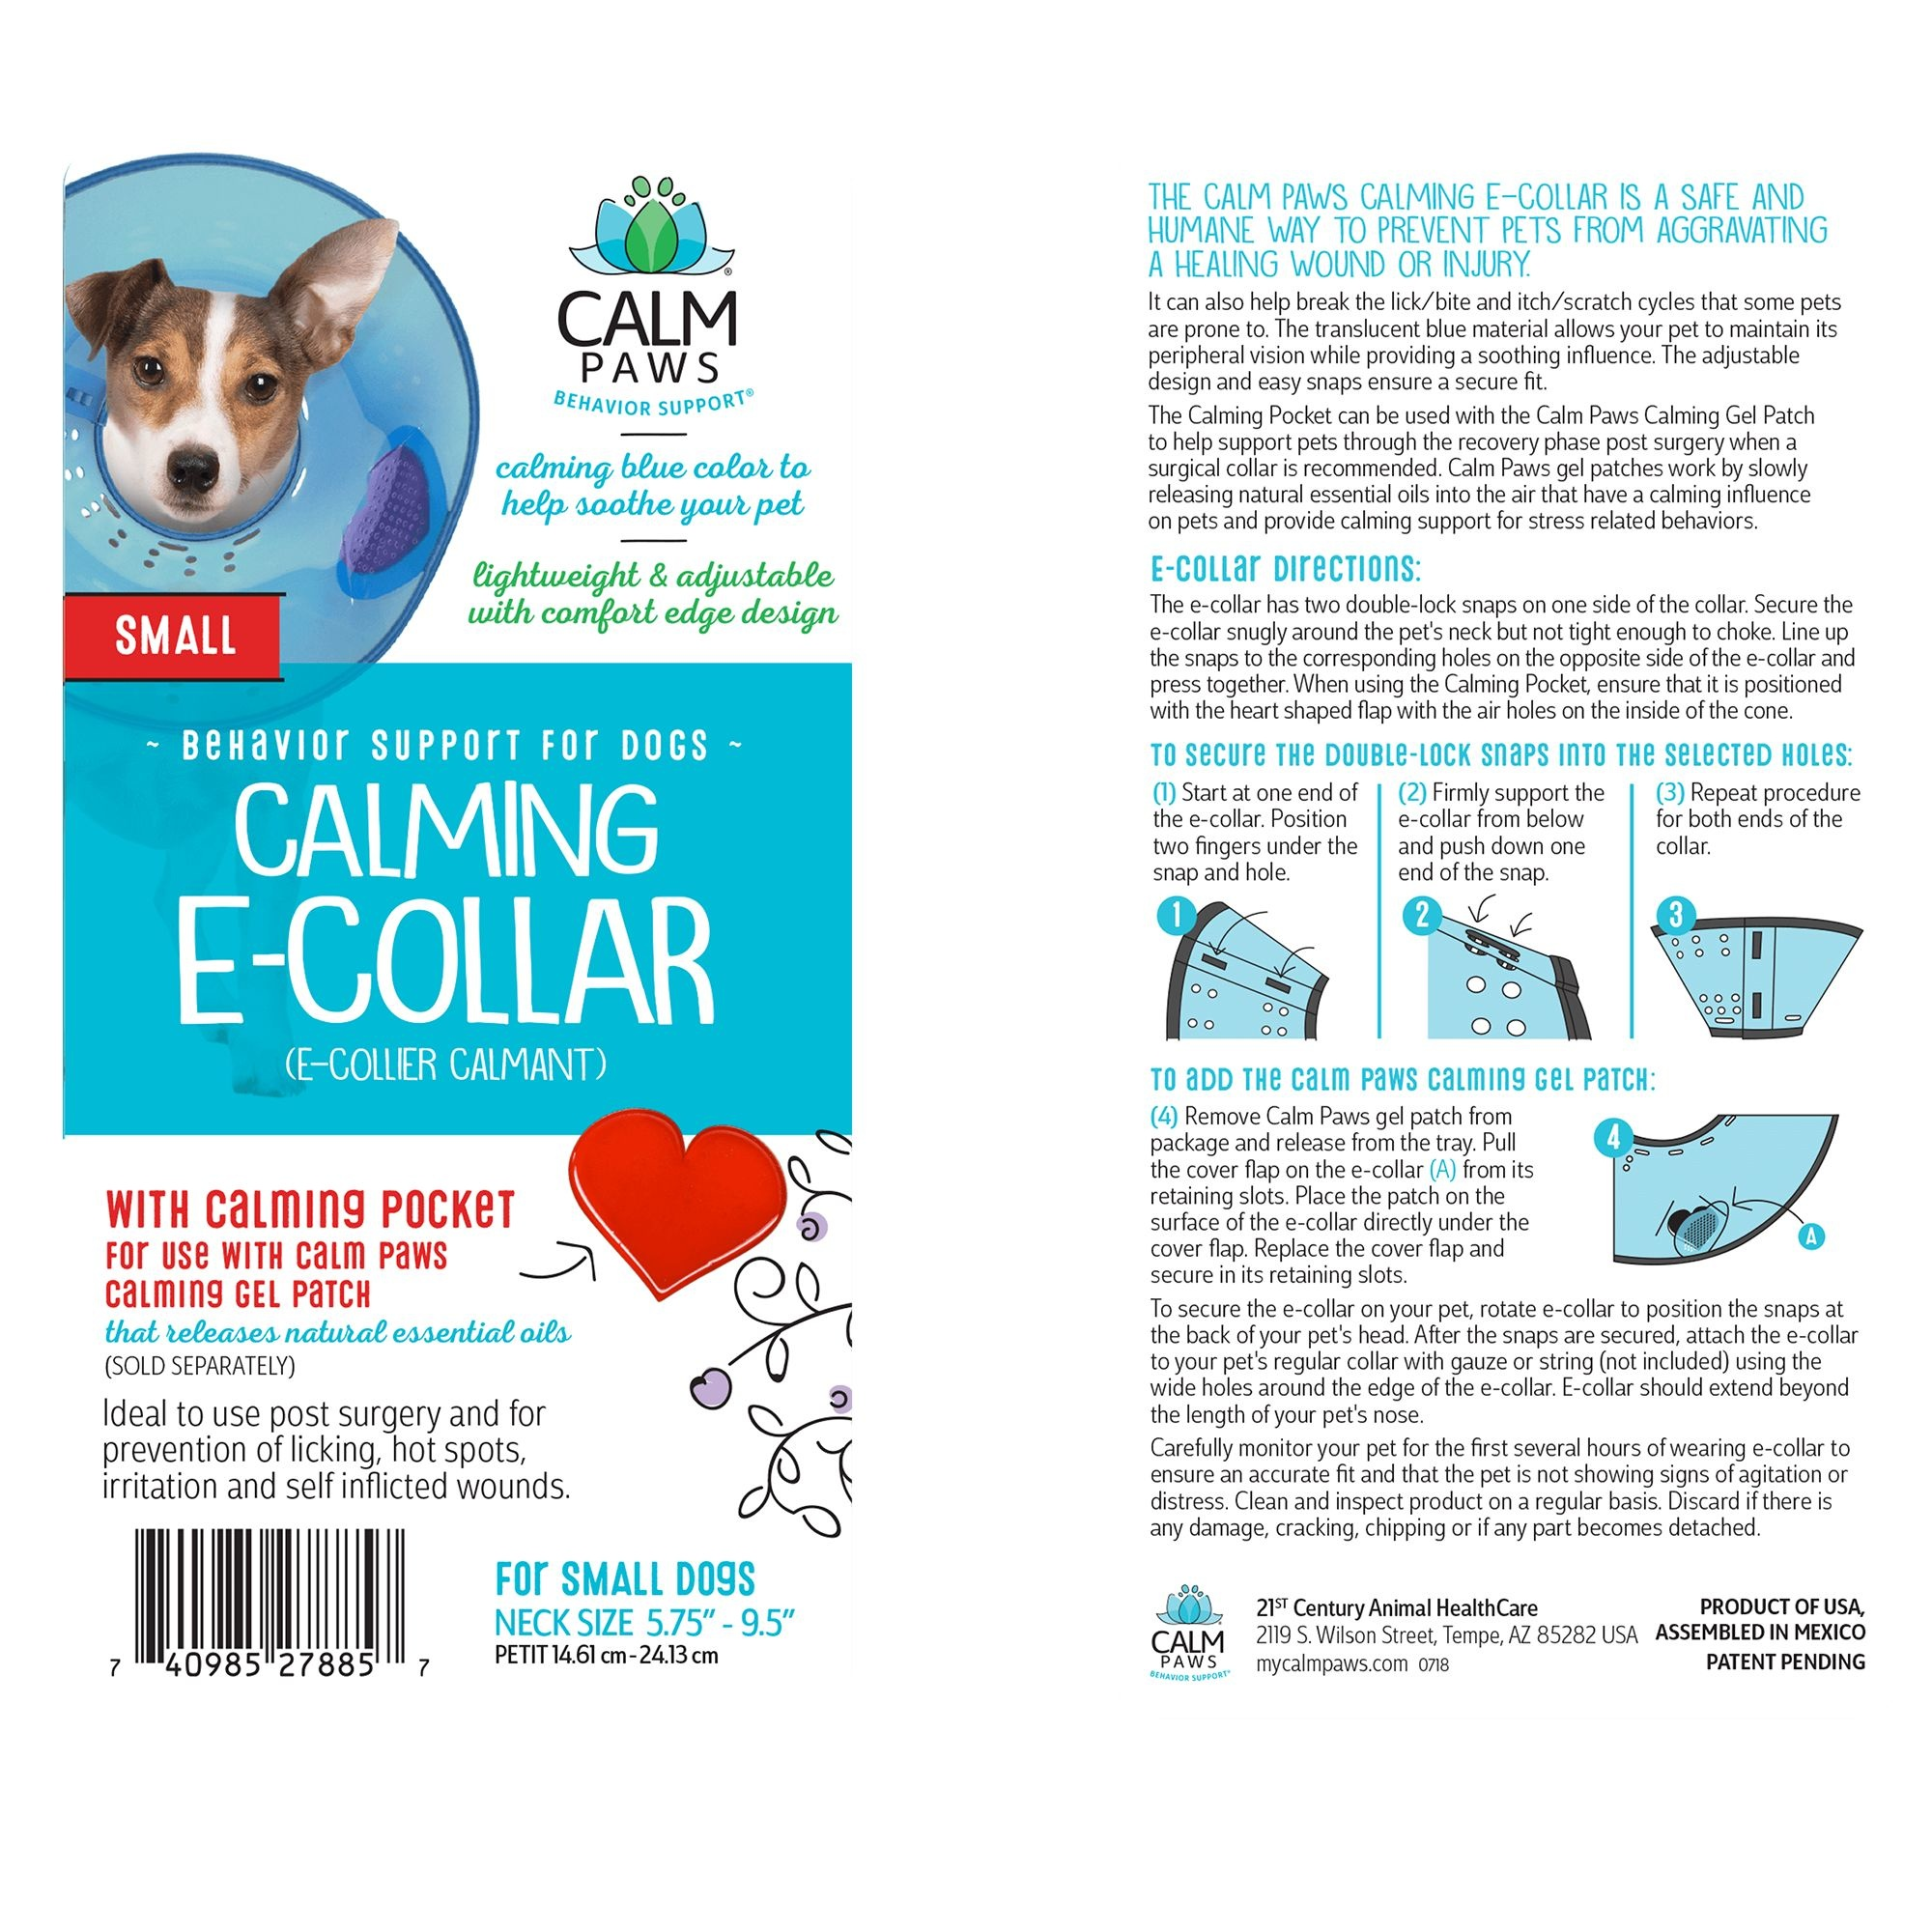 21st Centry Animal Health Care Calm Paws Calming Elizabethan Collar